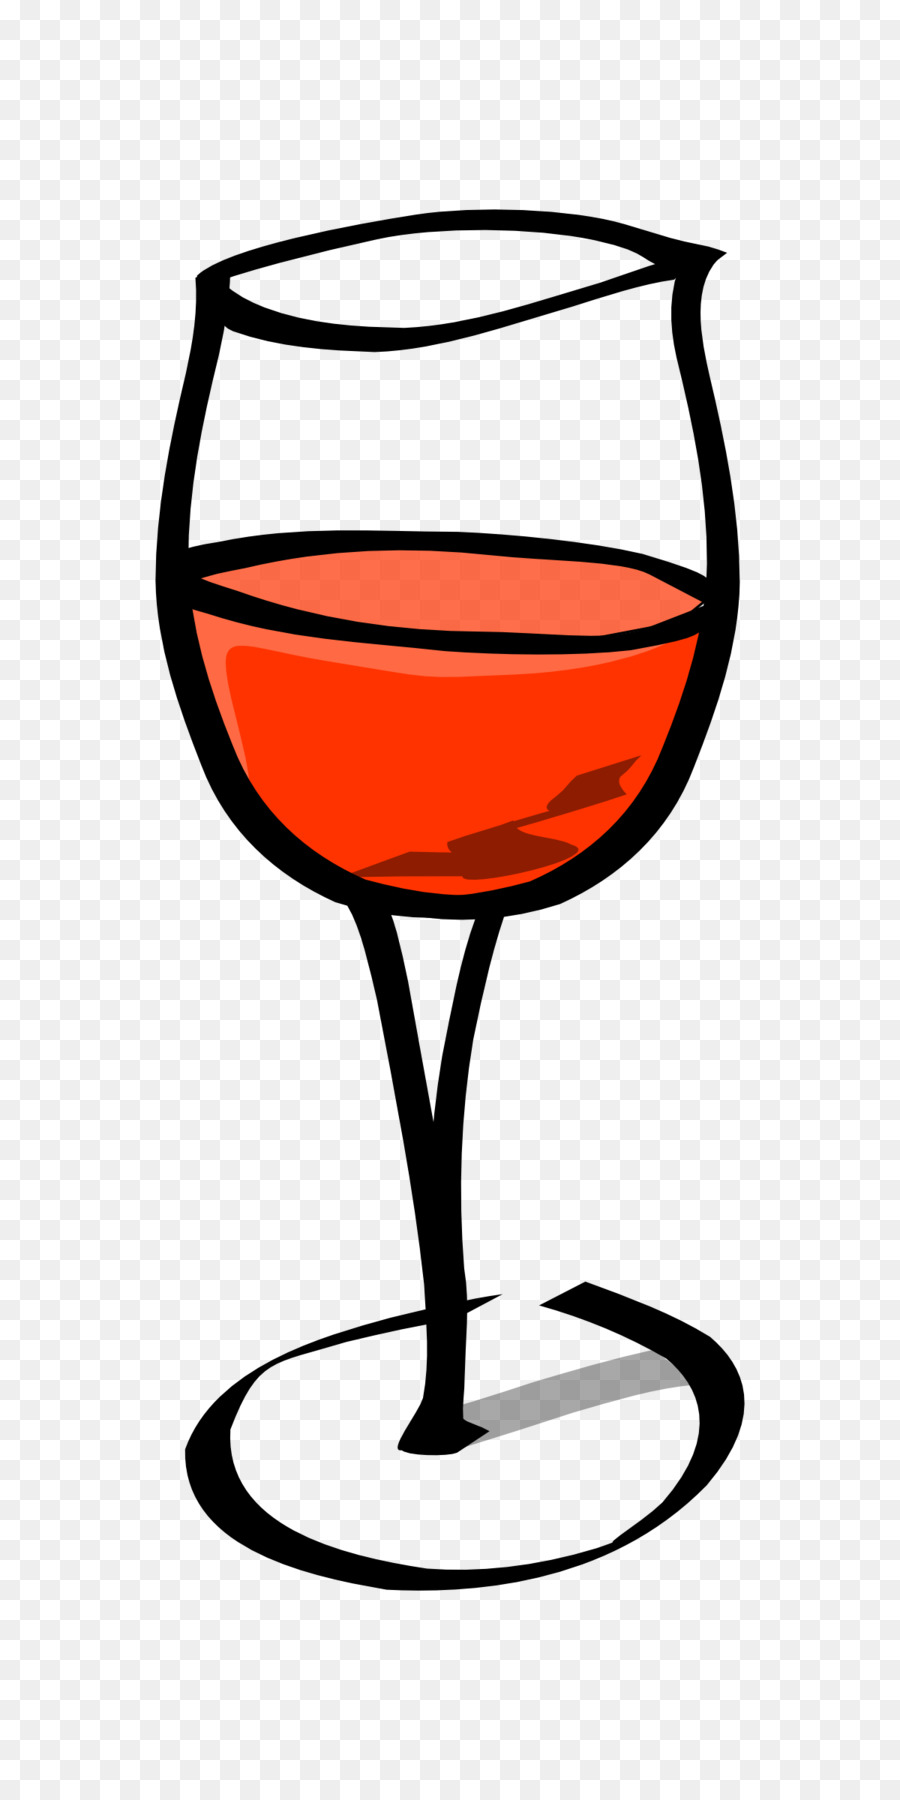 Wine glass pictures clipart graphic free Wine Glass clipart - Wine, Glass, transparent clip art graphic free